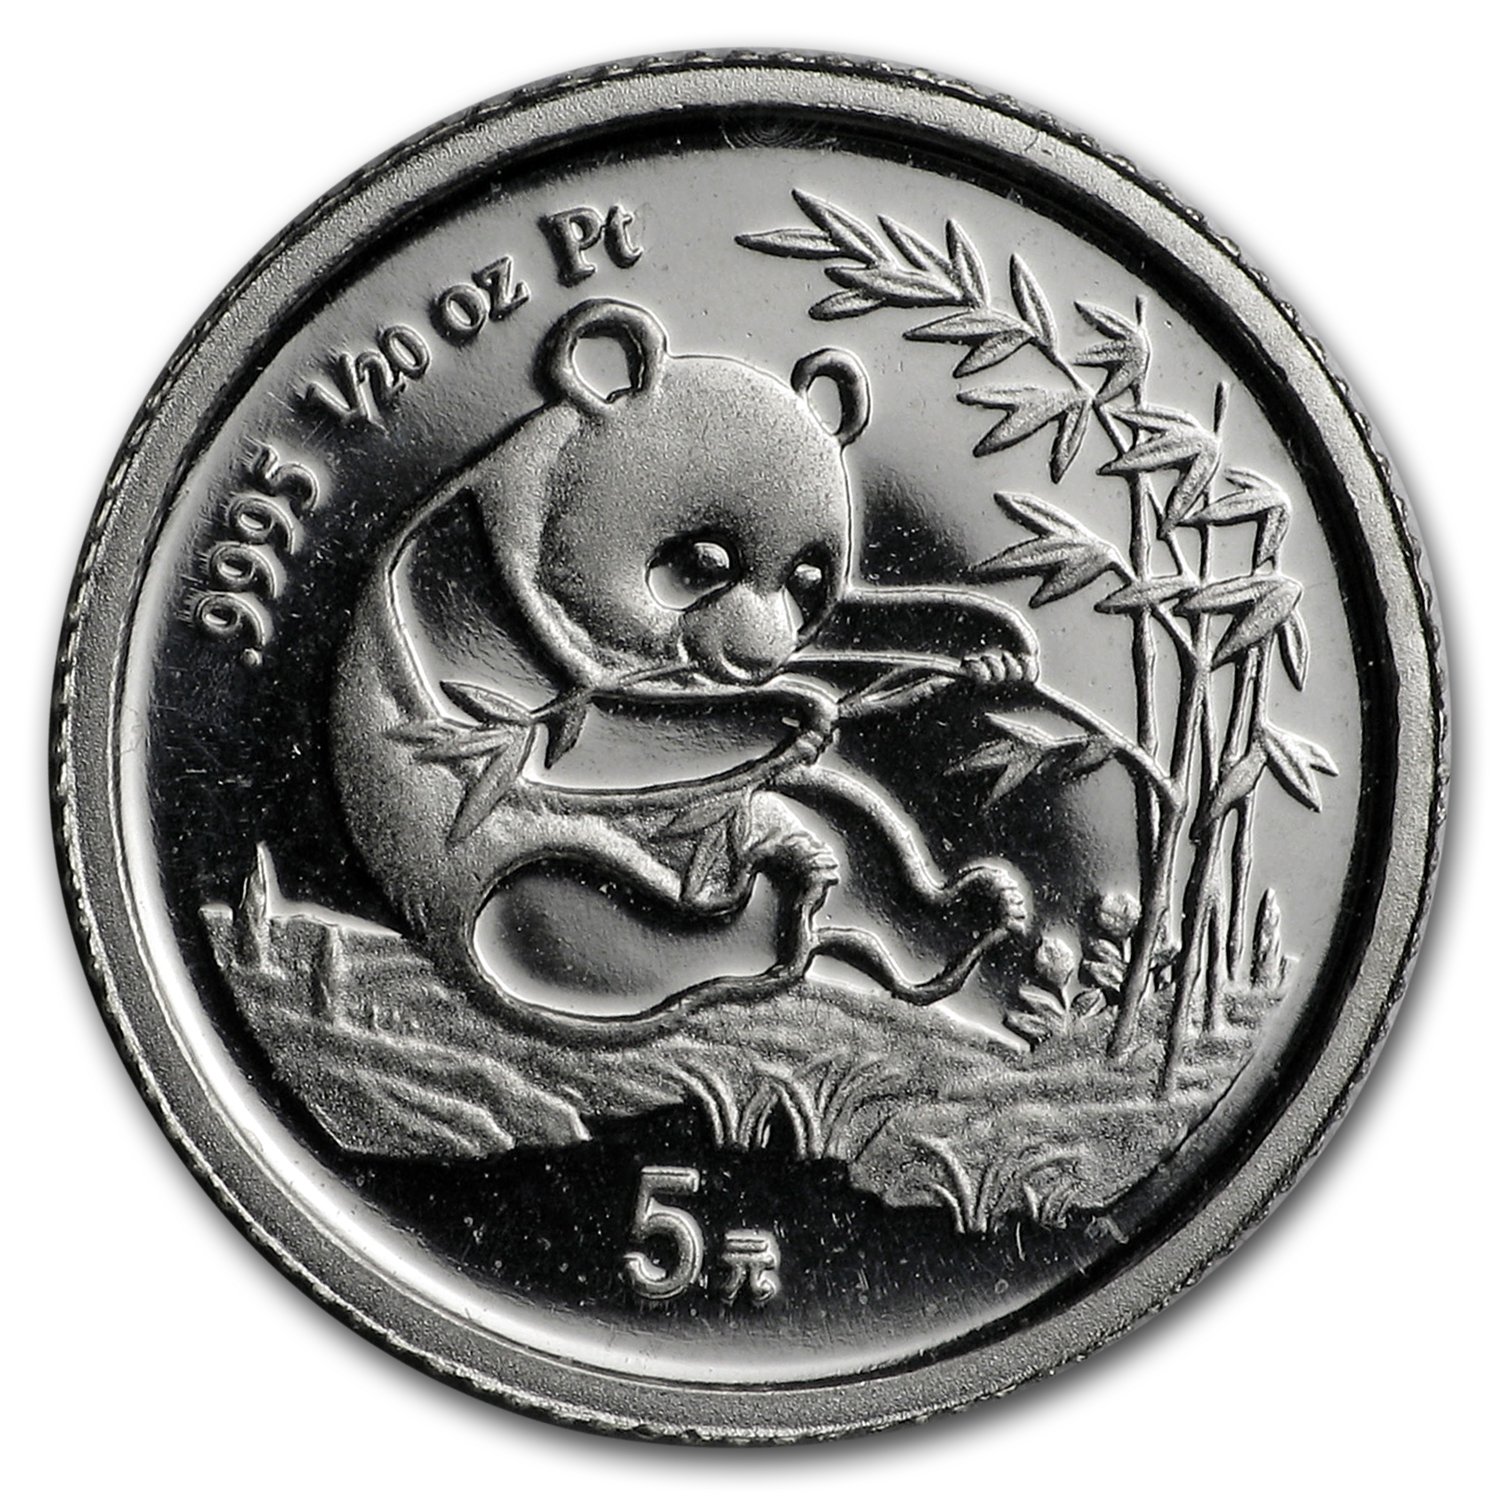 1994 China 1/20 oz Platinum Panda BU (Out of Plastic)